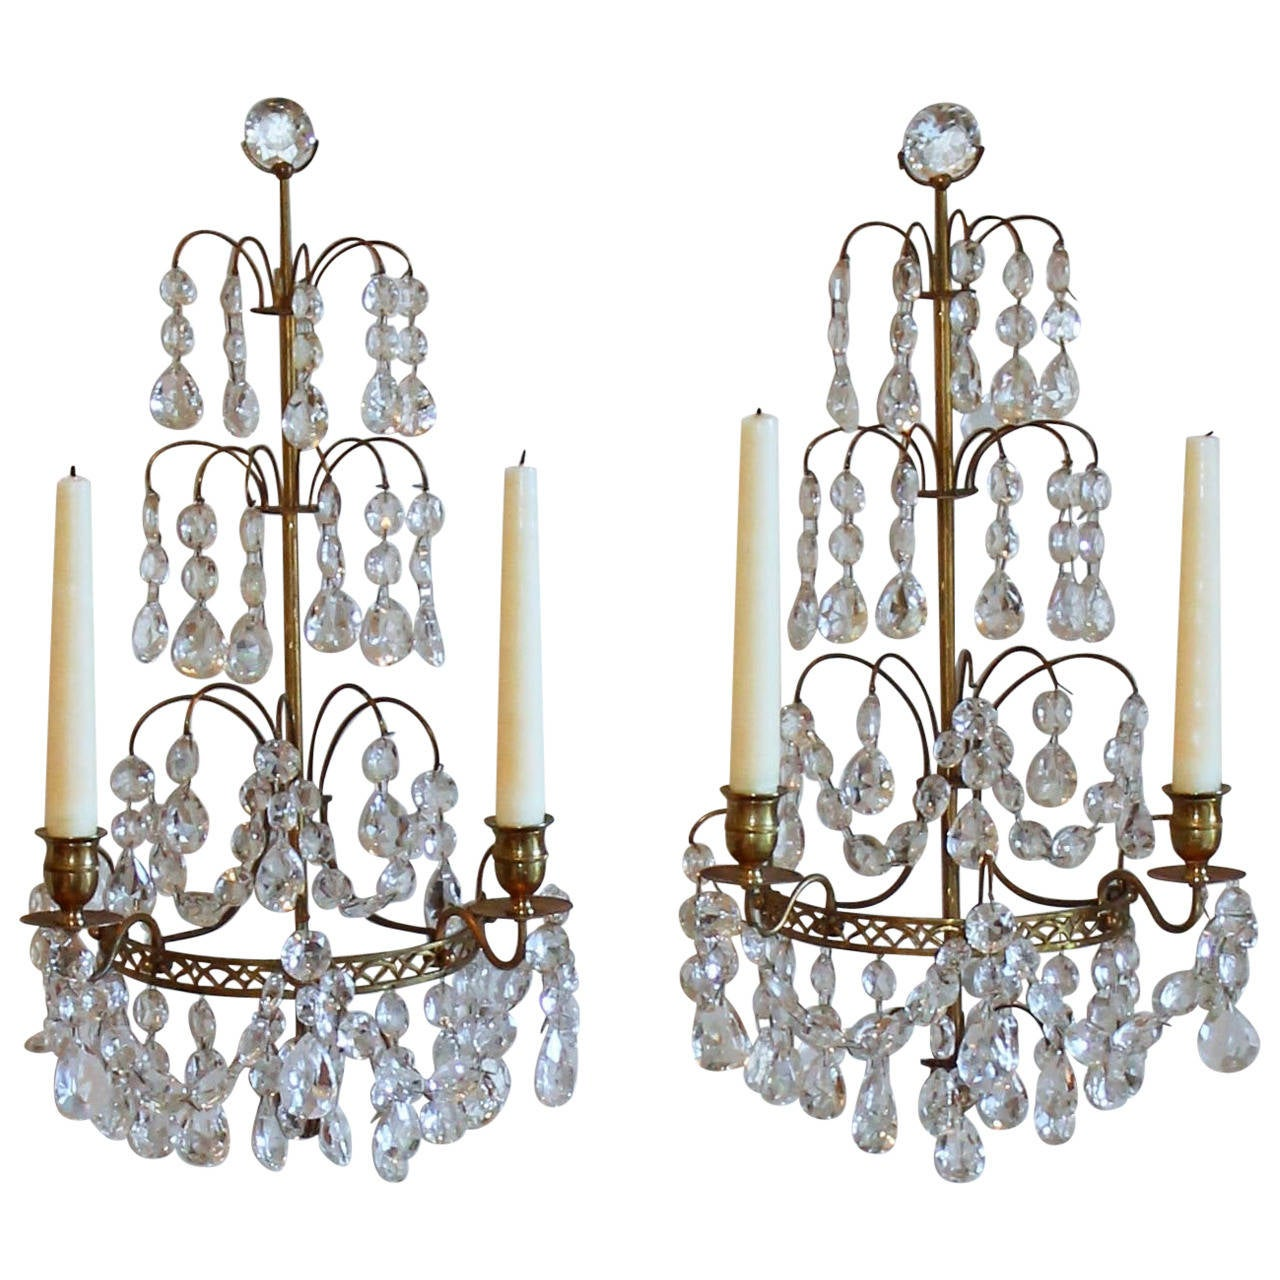 Wall Sconces For Candles With Crystals : Pair of Swedish Gustavian Style, Crystal and Bronze Candle Wall Sconces at 1stdibs